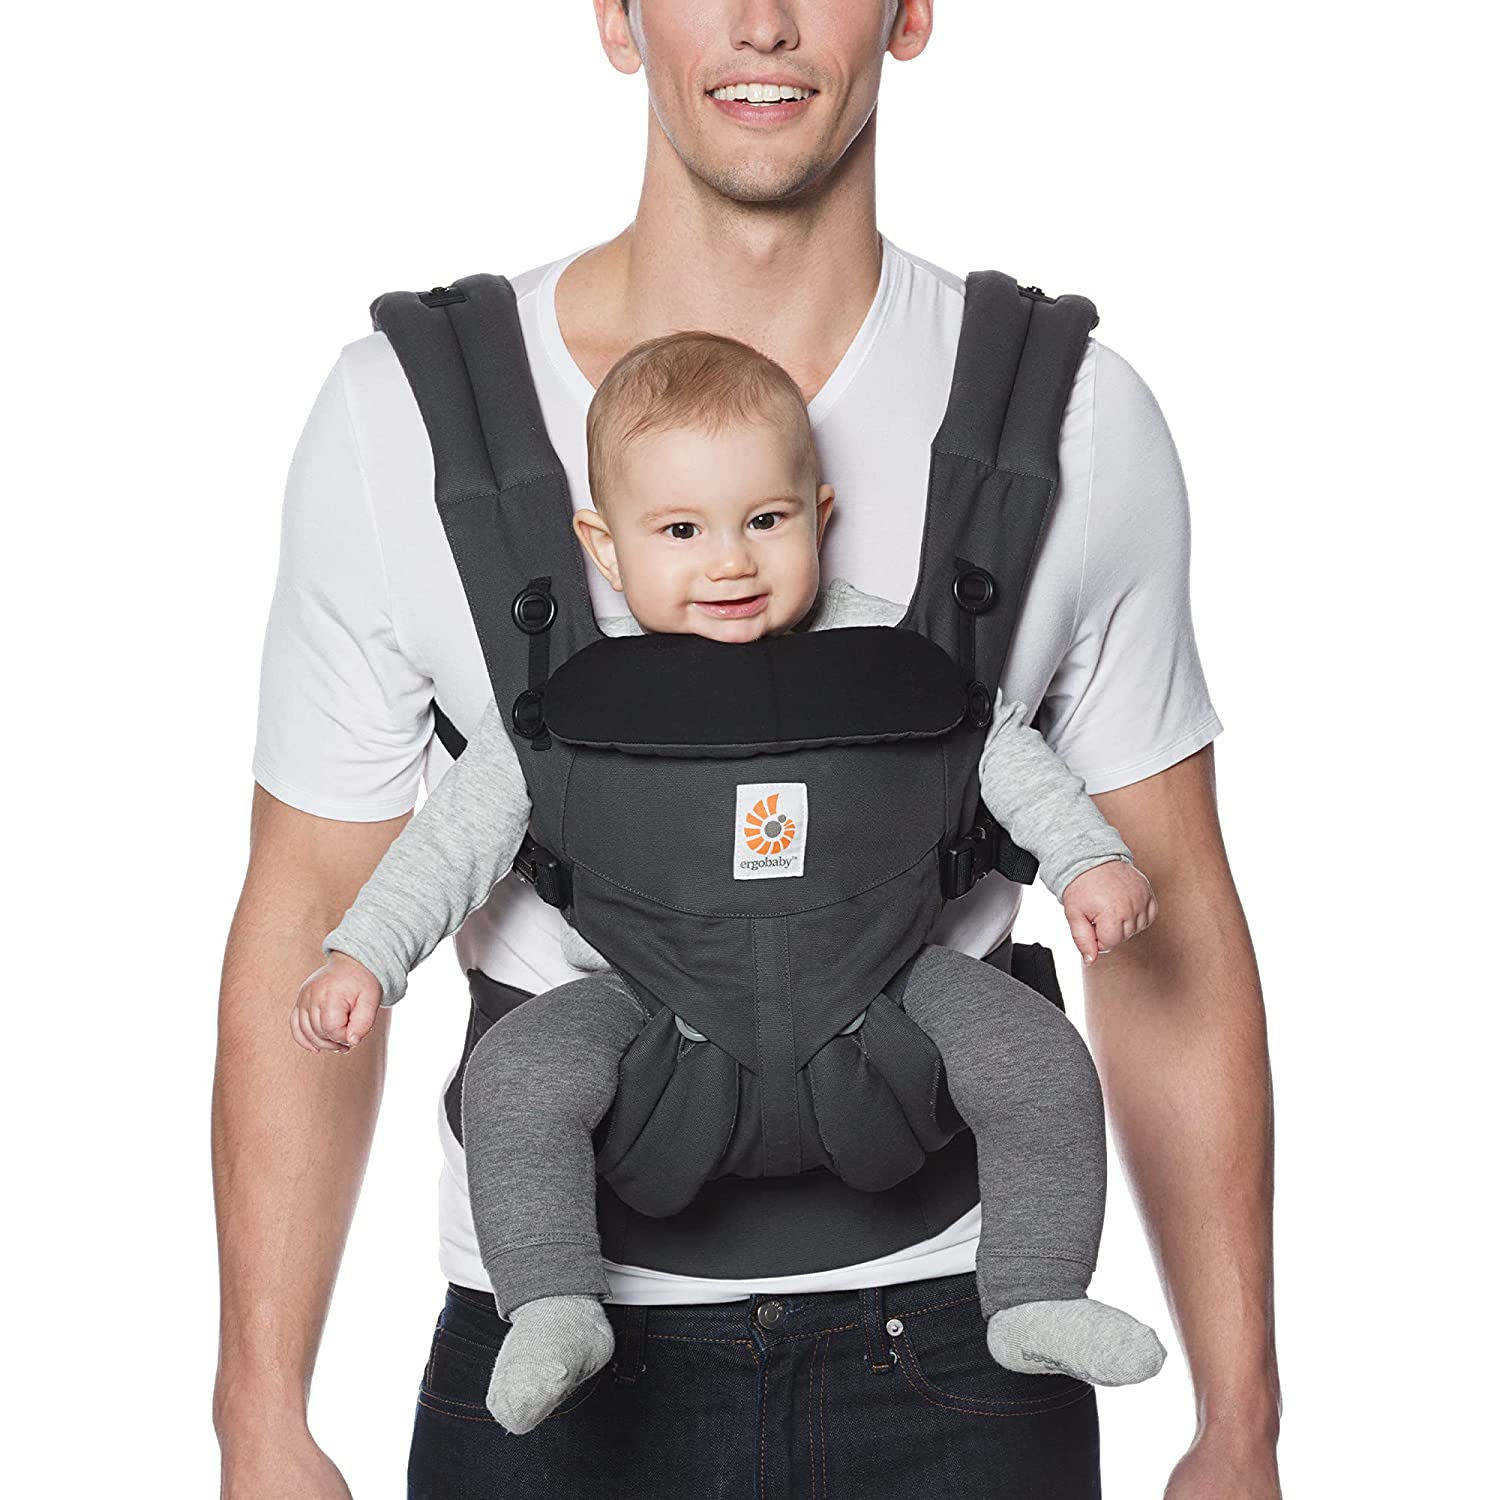 Ergobaby Omni 360 All-Position Baby Carrier for Newborn to Toddler with Lumbar Support (7-45 Pounds), Charcoal